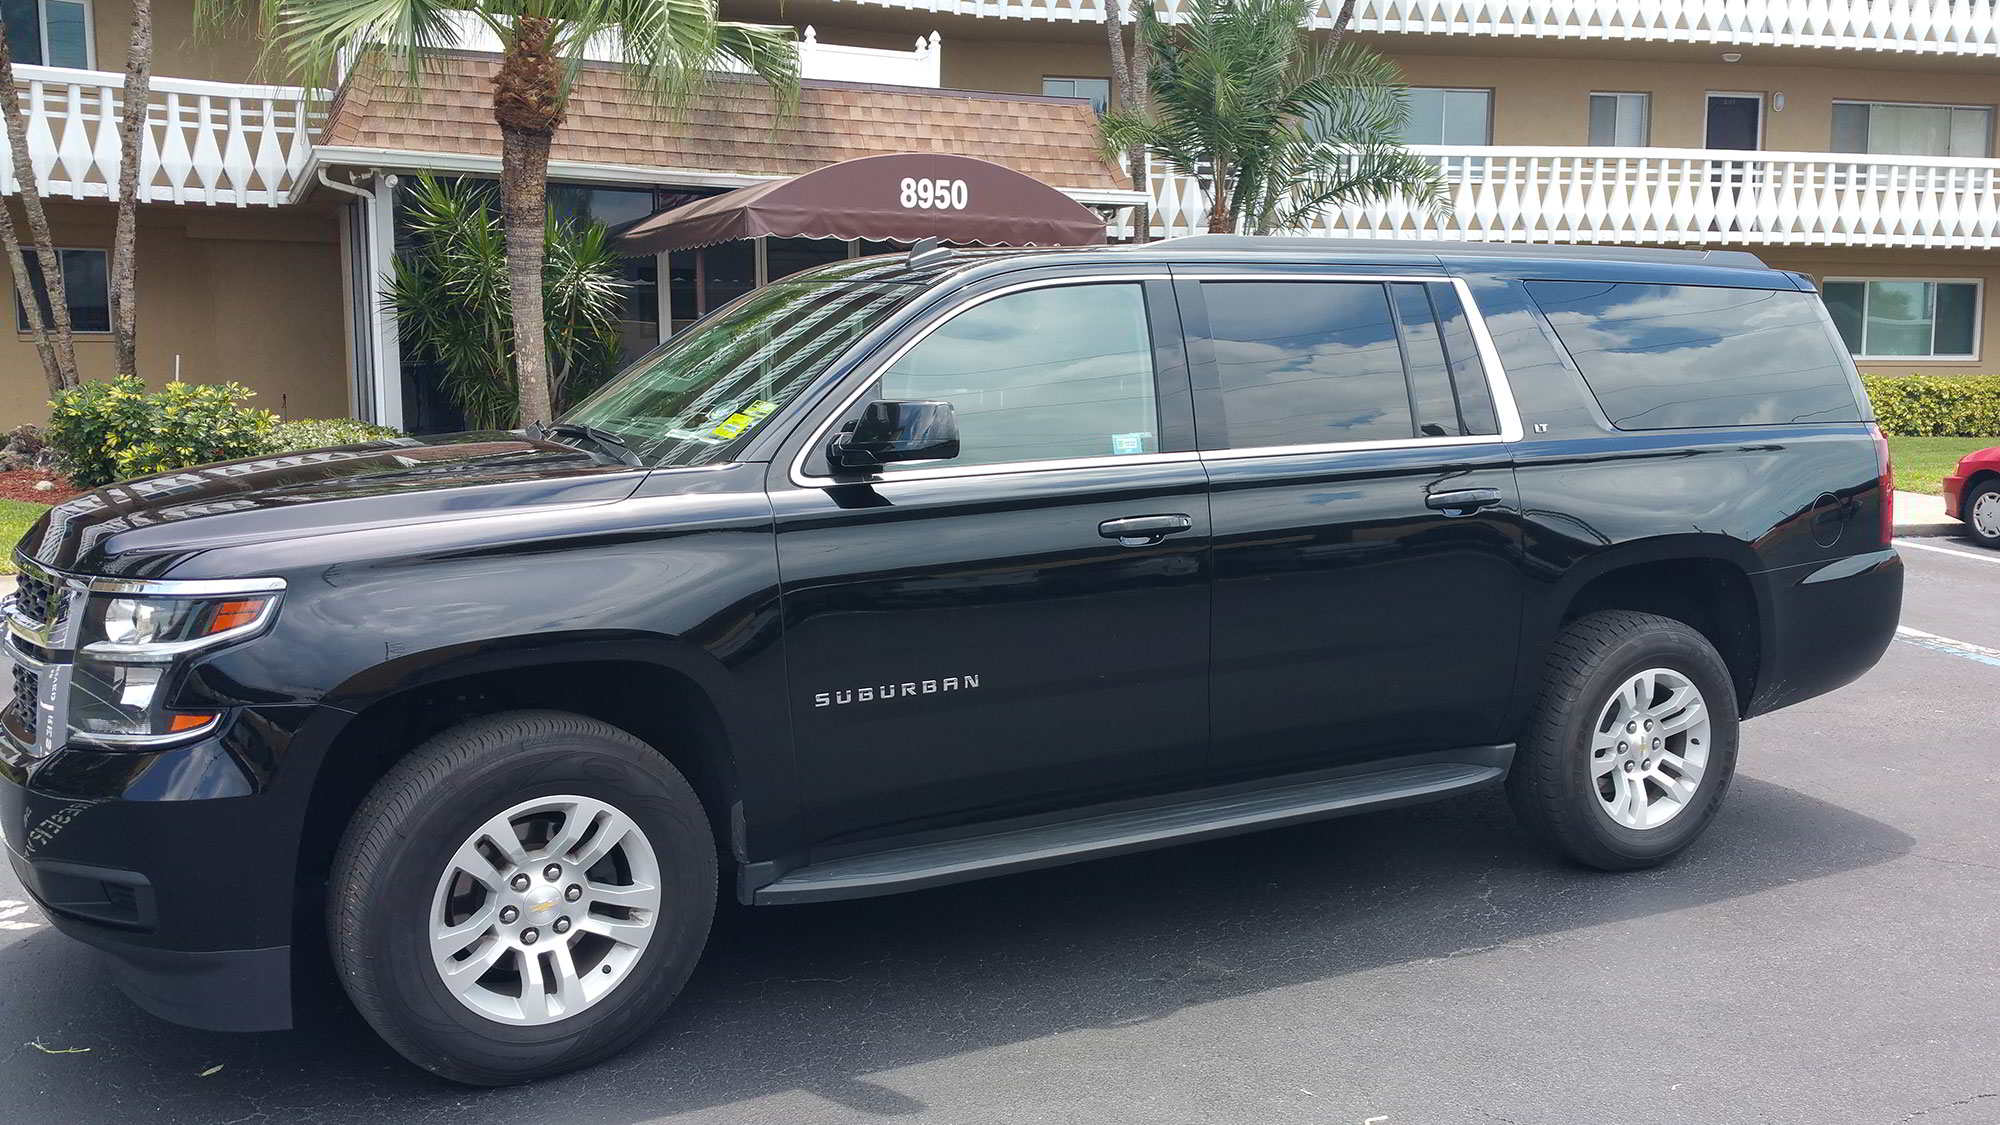 SUV 10 Passenger Limo Rental External Photo. Pick Up Drop Off Limo Service Clearwater, Florida